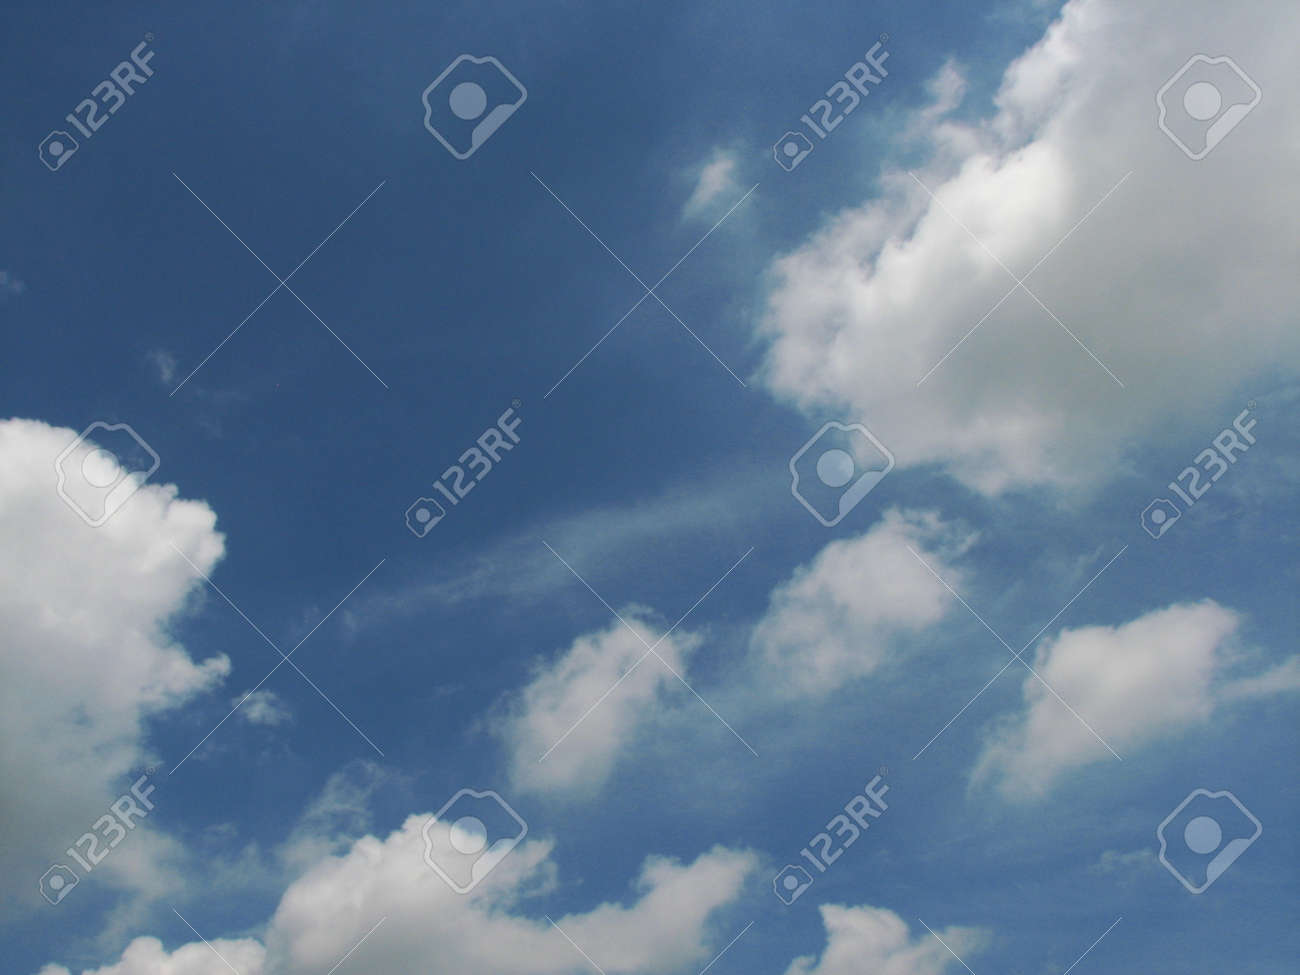 The Sky Is A Symbol Of Dreams Image